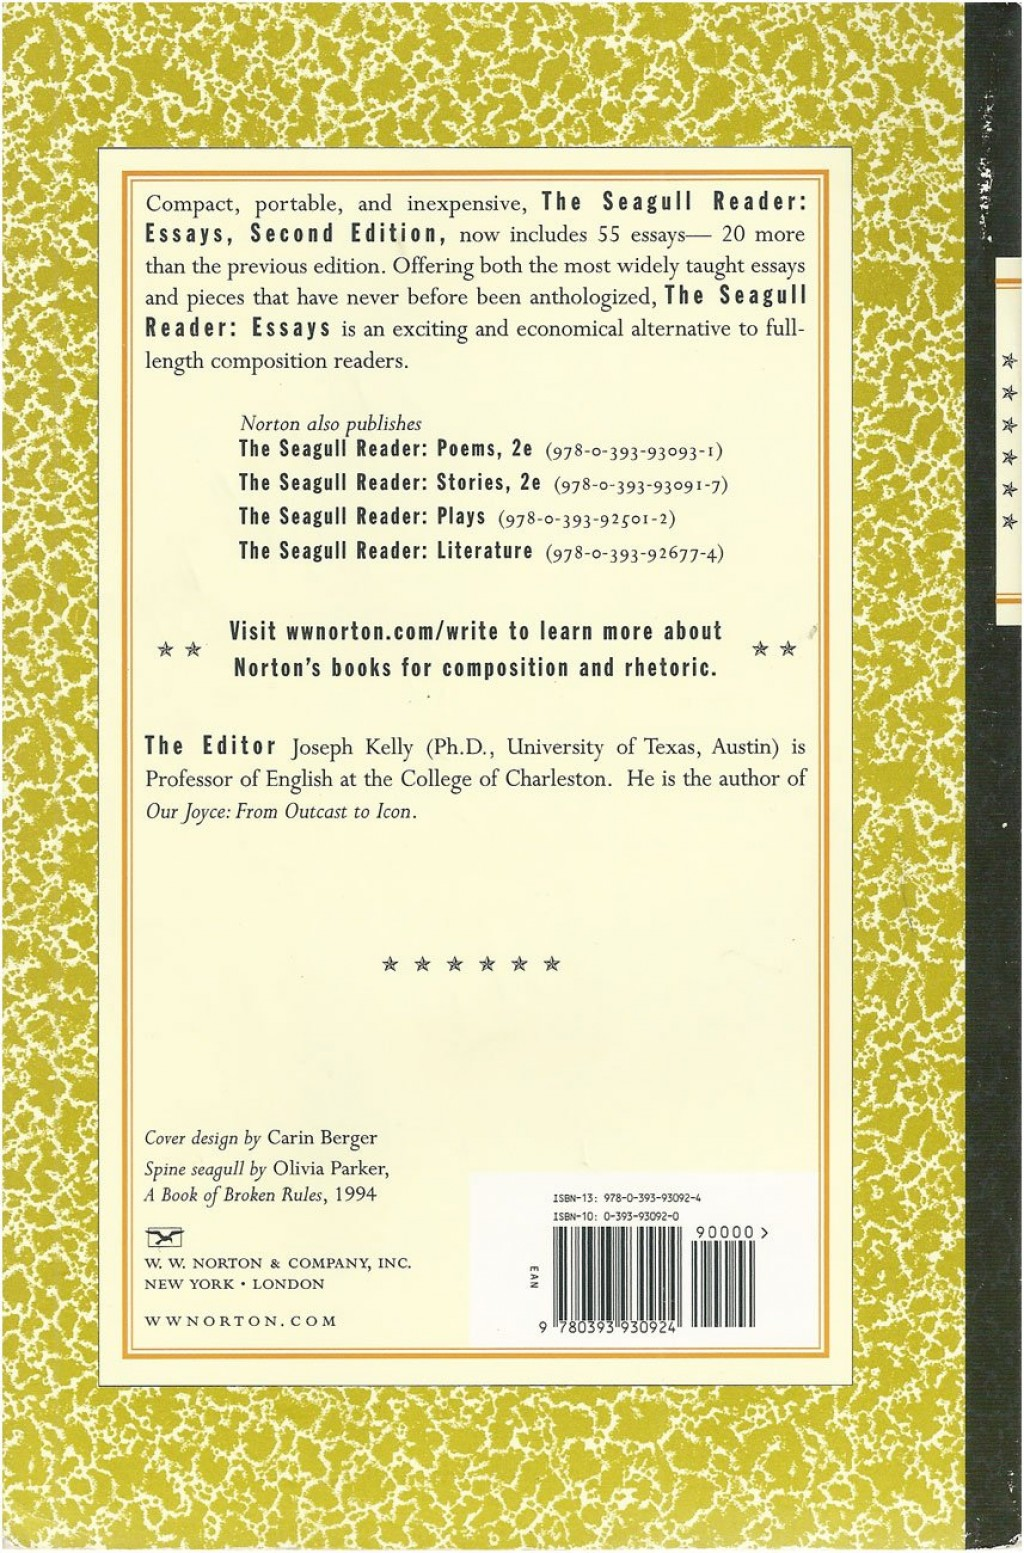 003 81kdkc0bdcl The Seagull Reader Essays 2nd Edition Pdf Essay Outstanding Free Large